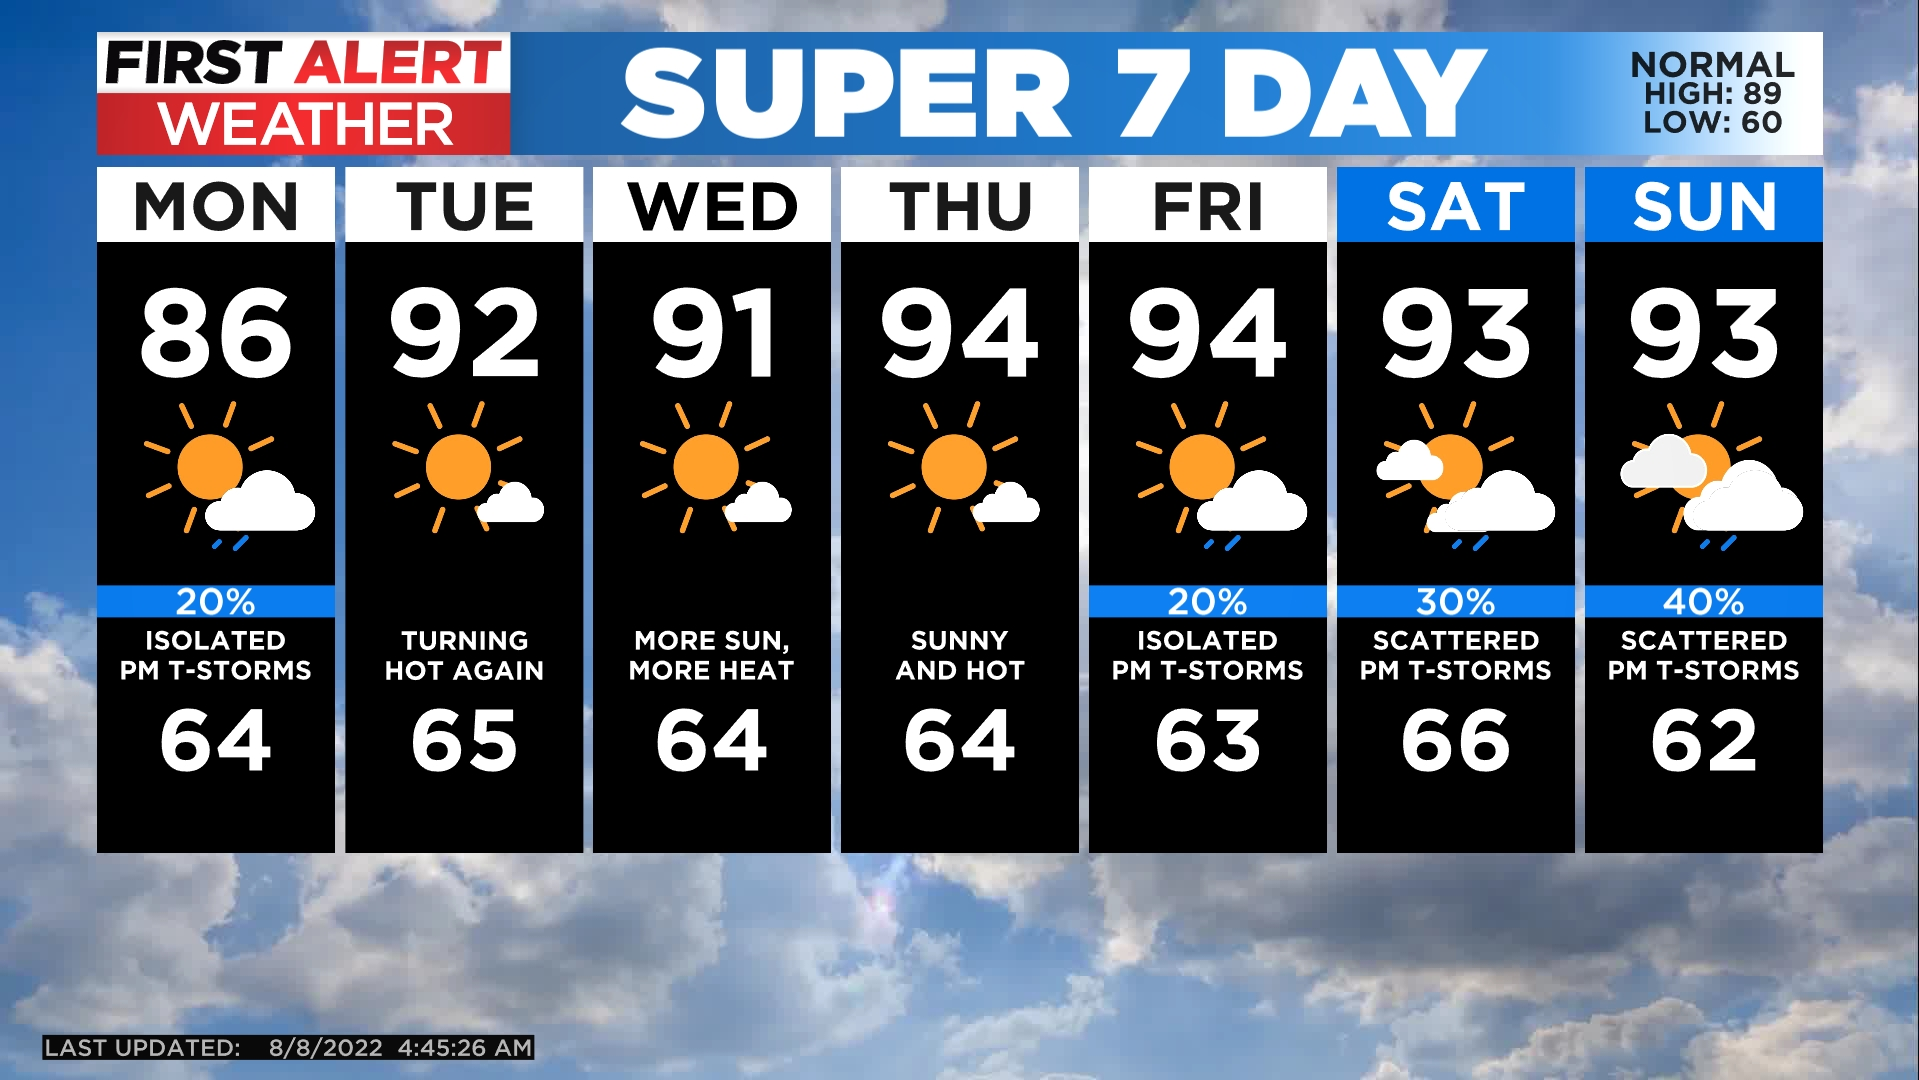 5day Warm And Windy Monday Coming